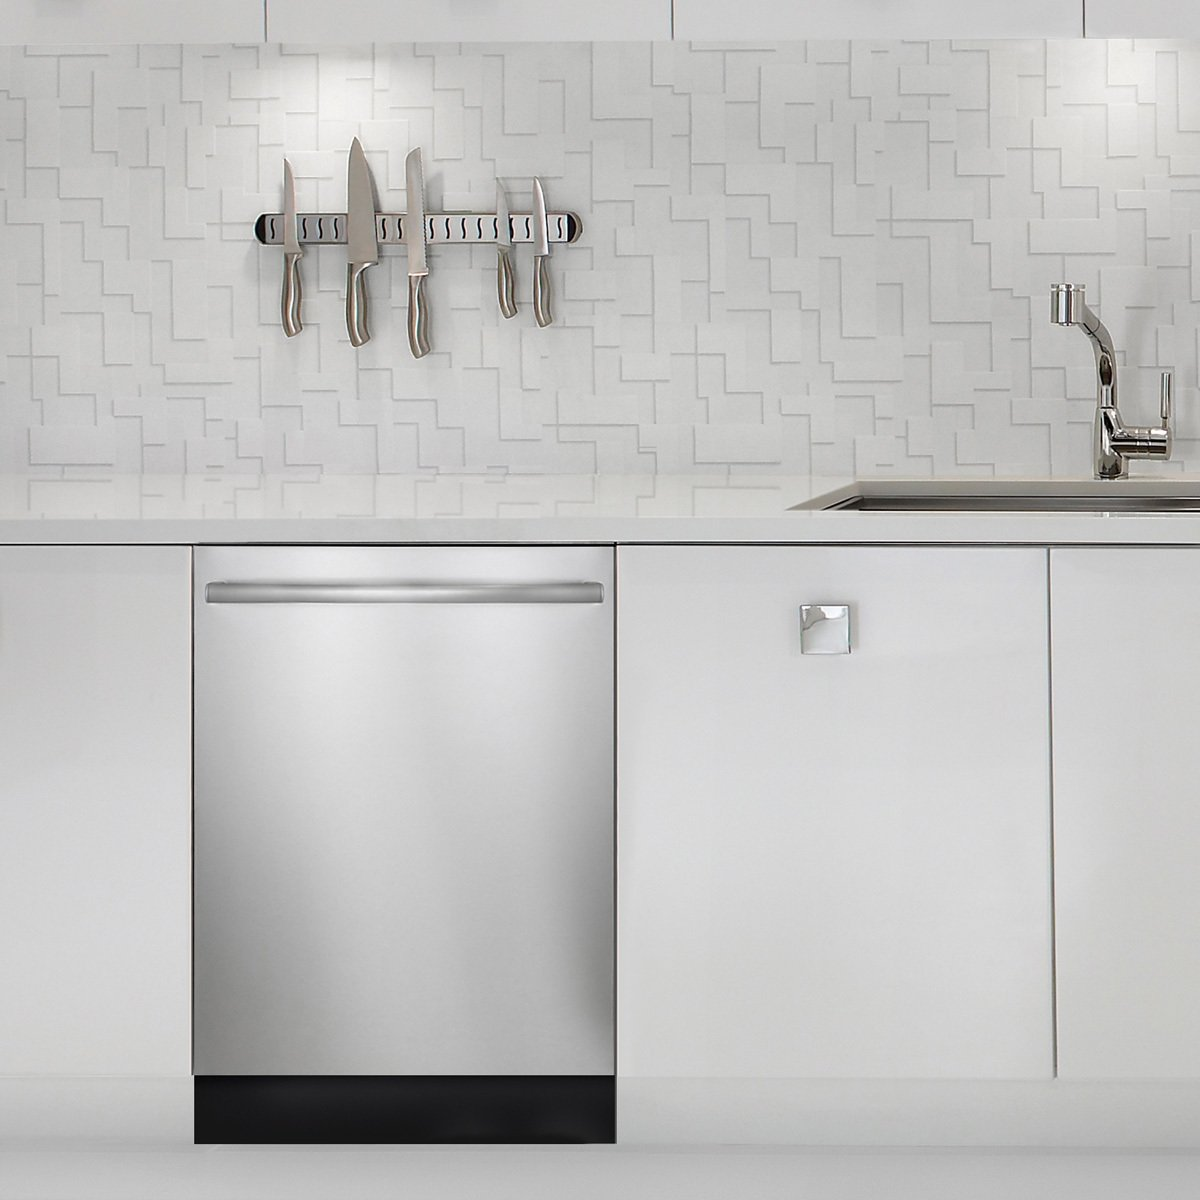 Bosch appliances' modern European look works flexibly in many kitchen types, from transitional to contemporary.  Photo 6 of 8 in Bosch Brings Refined European Design to the Kitchen